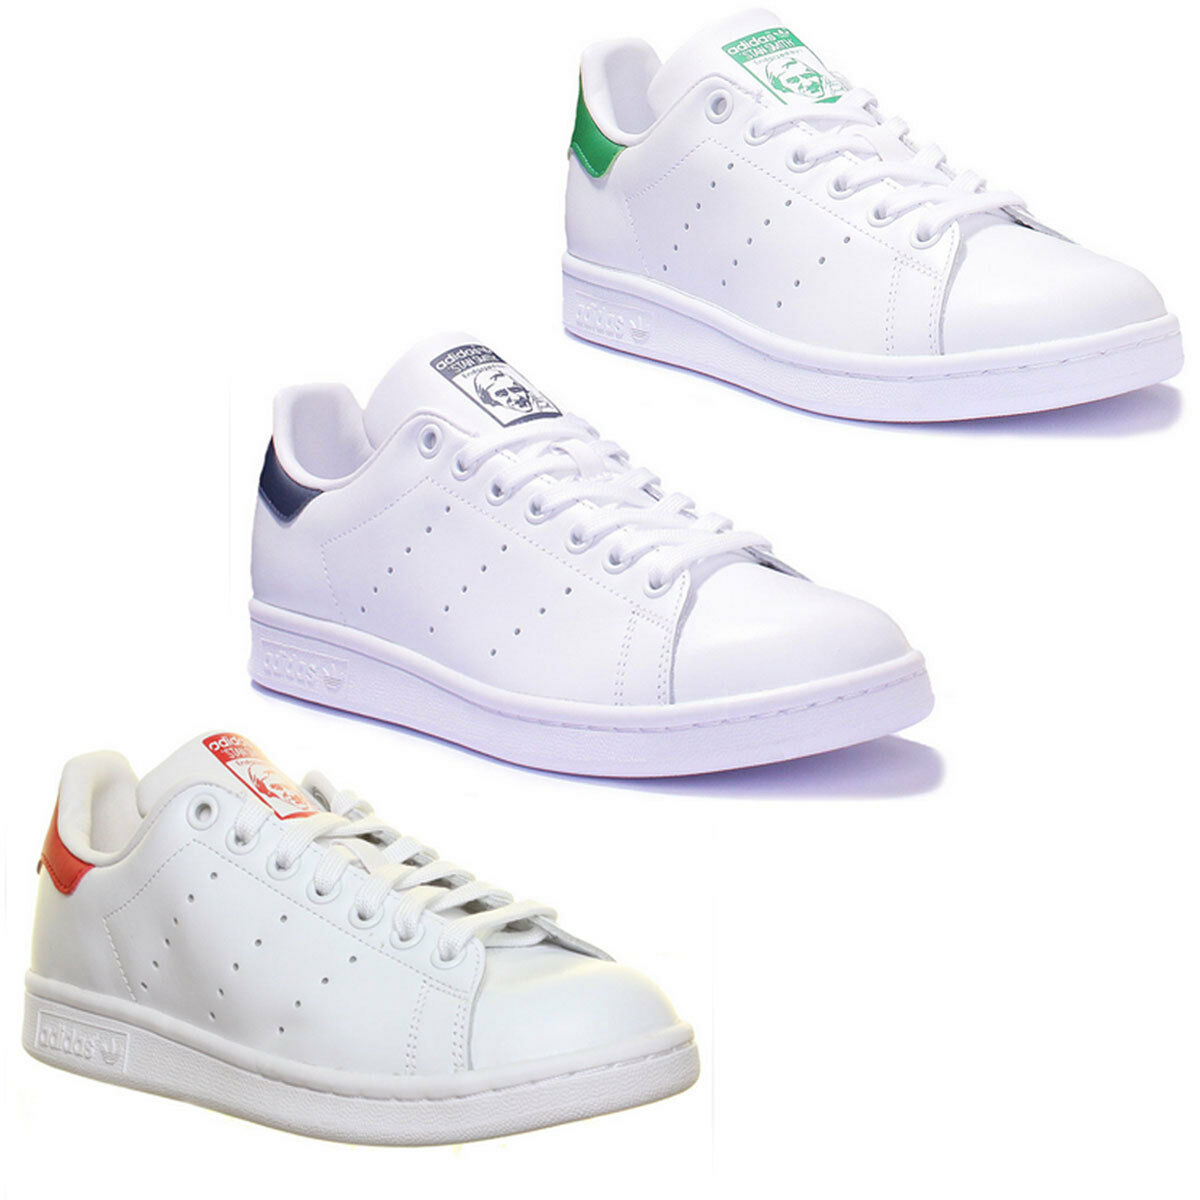 Adidas Stan Smith 3 Damens Leder Matt Weiß Grün Trainers 3 Smith - 8 c00de8